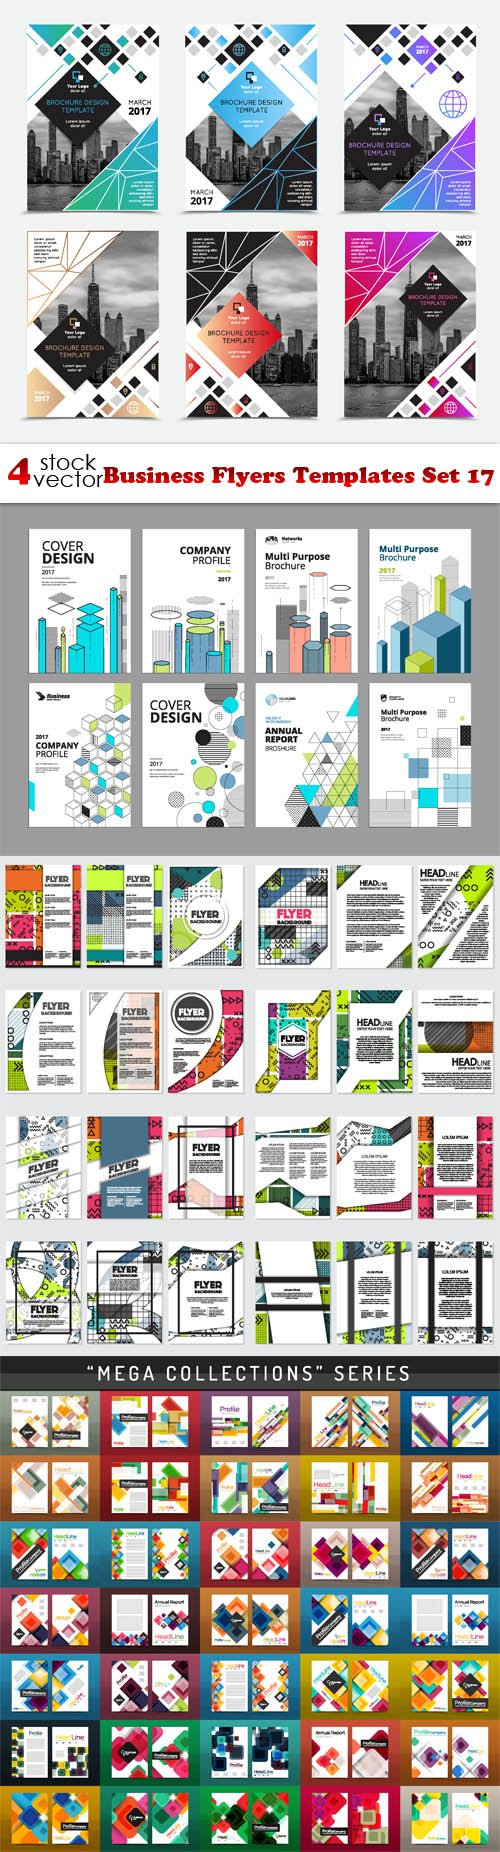 Vectors - Business Flyers Templates Set 17